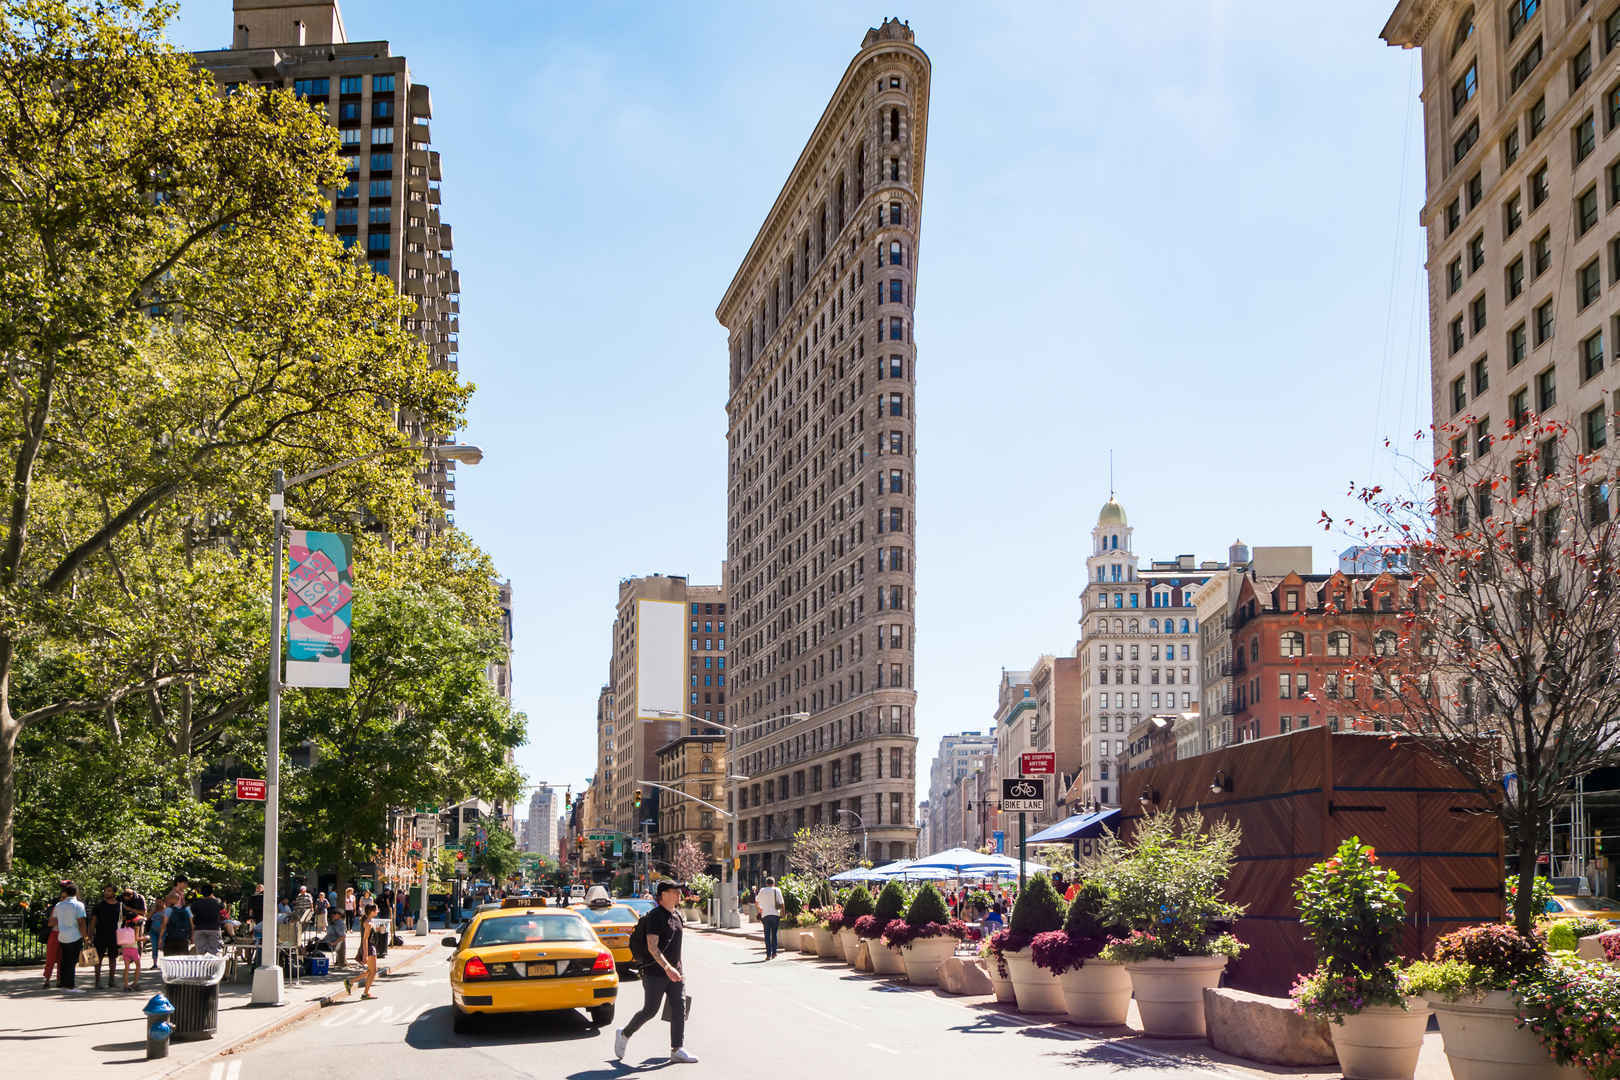 Tree-lined street in Flatiron District, New York City